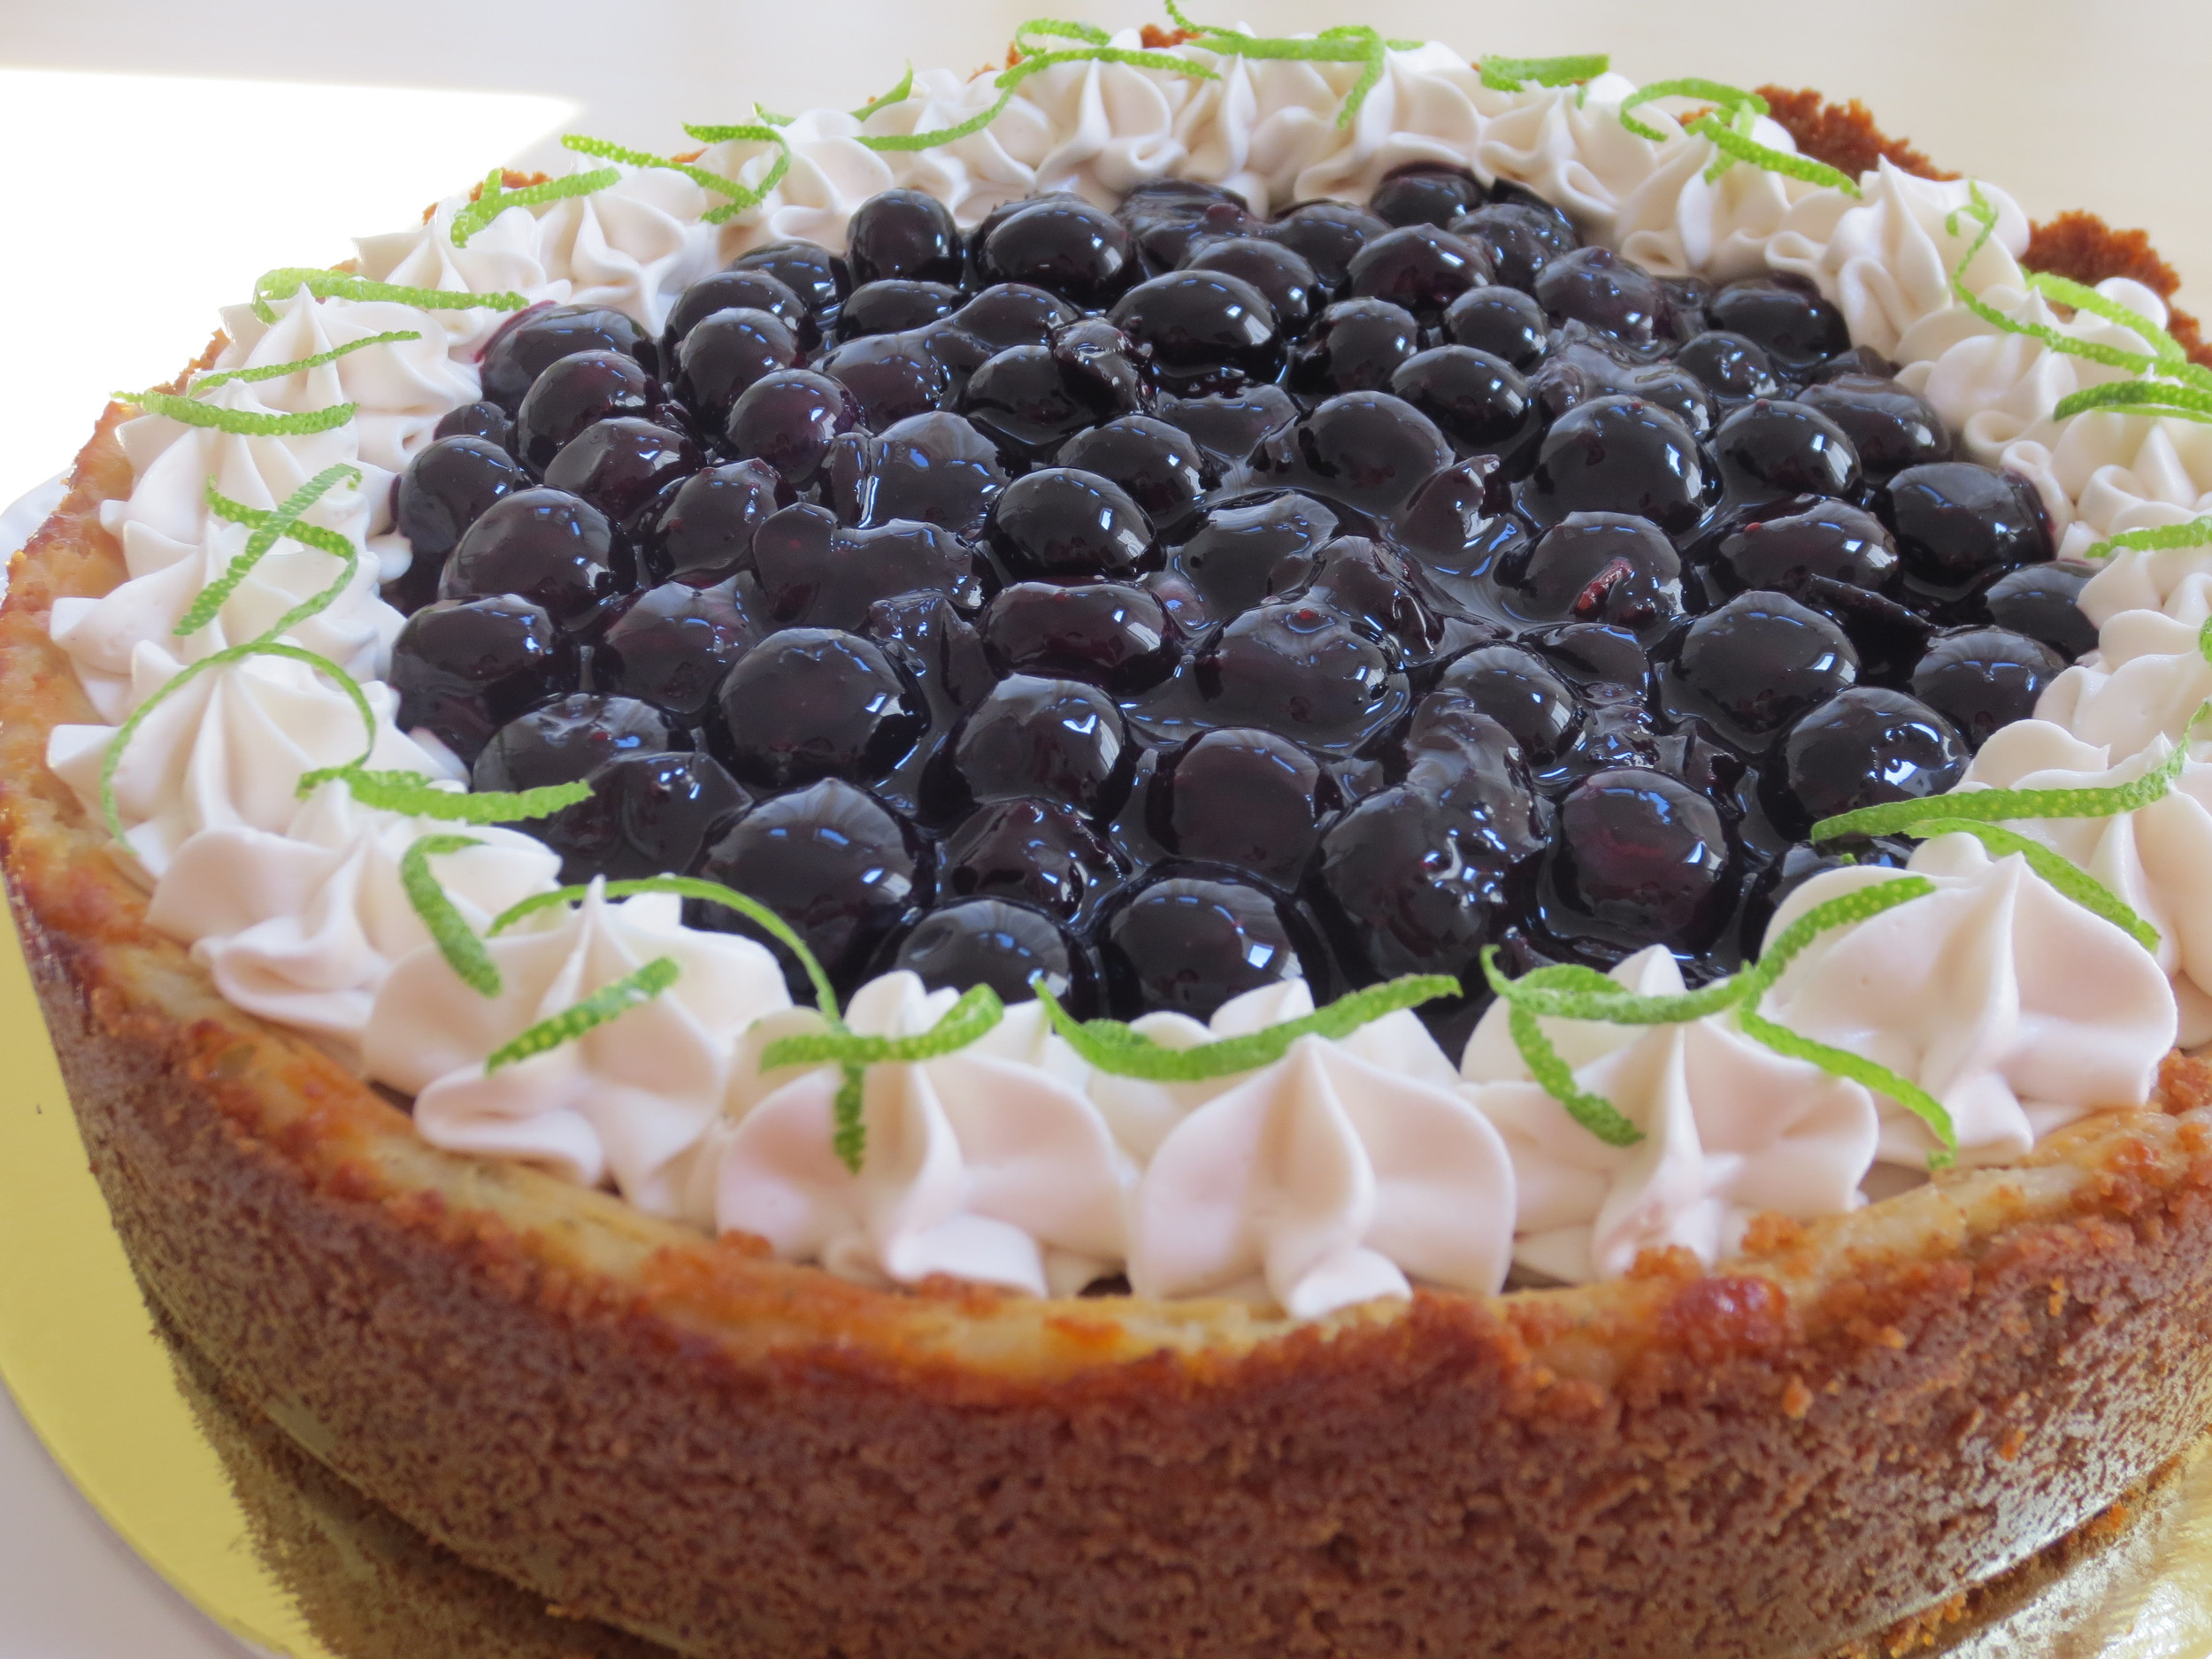 Vegan Blueberry Lime Cheesecake made for a challenge taker